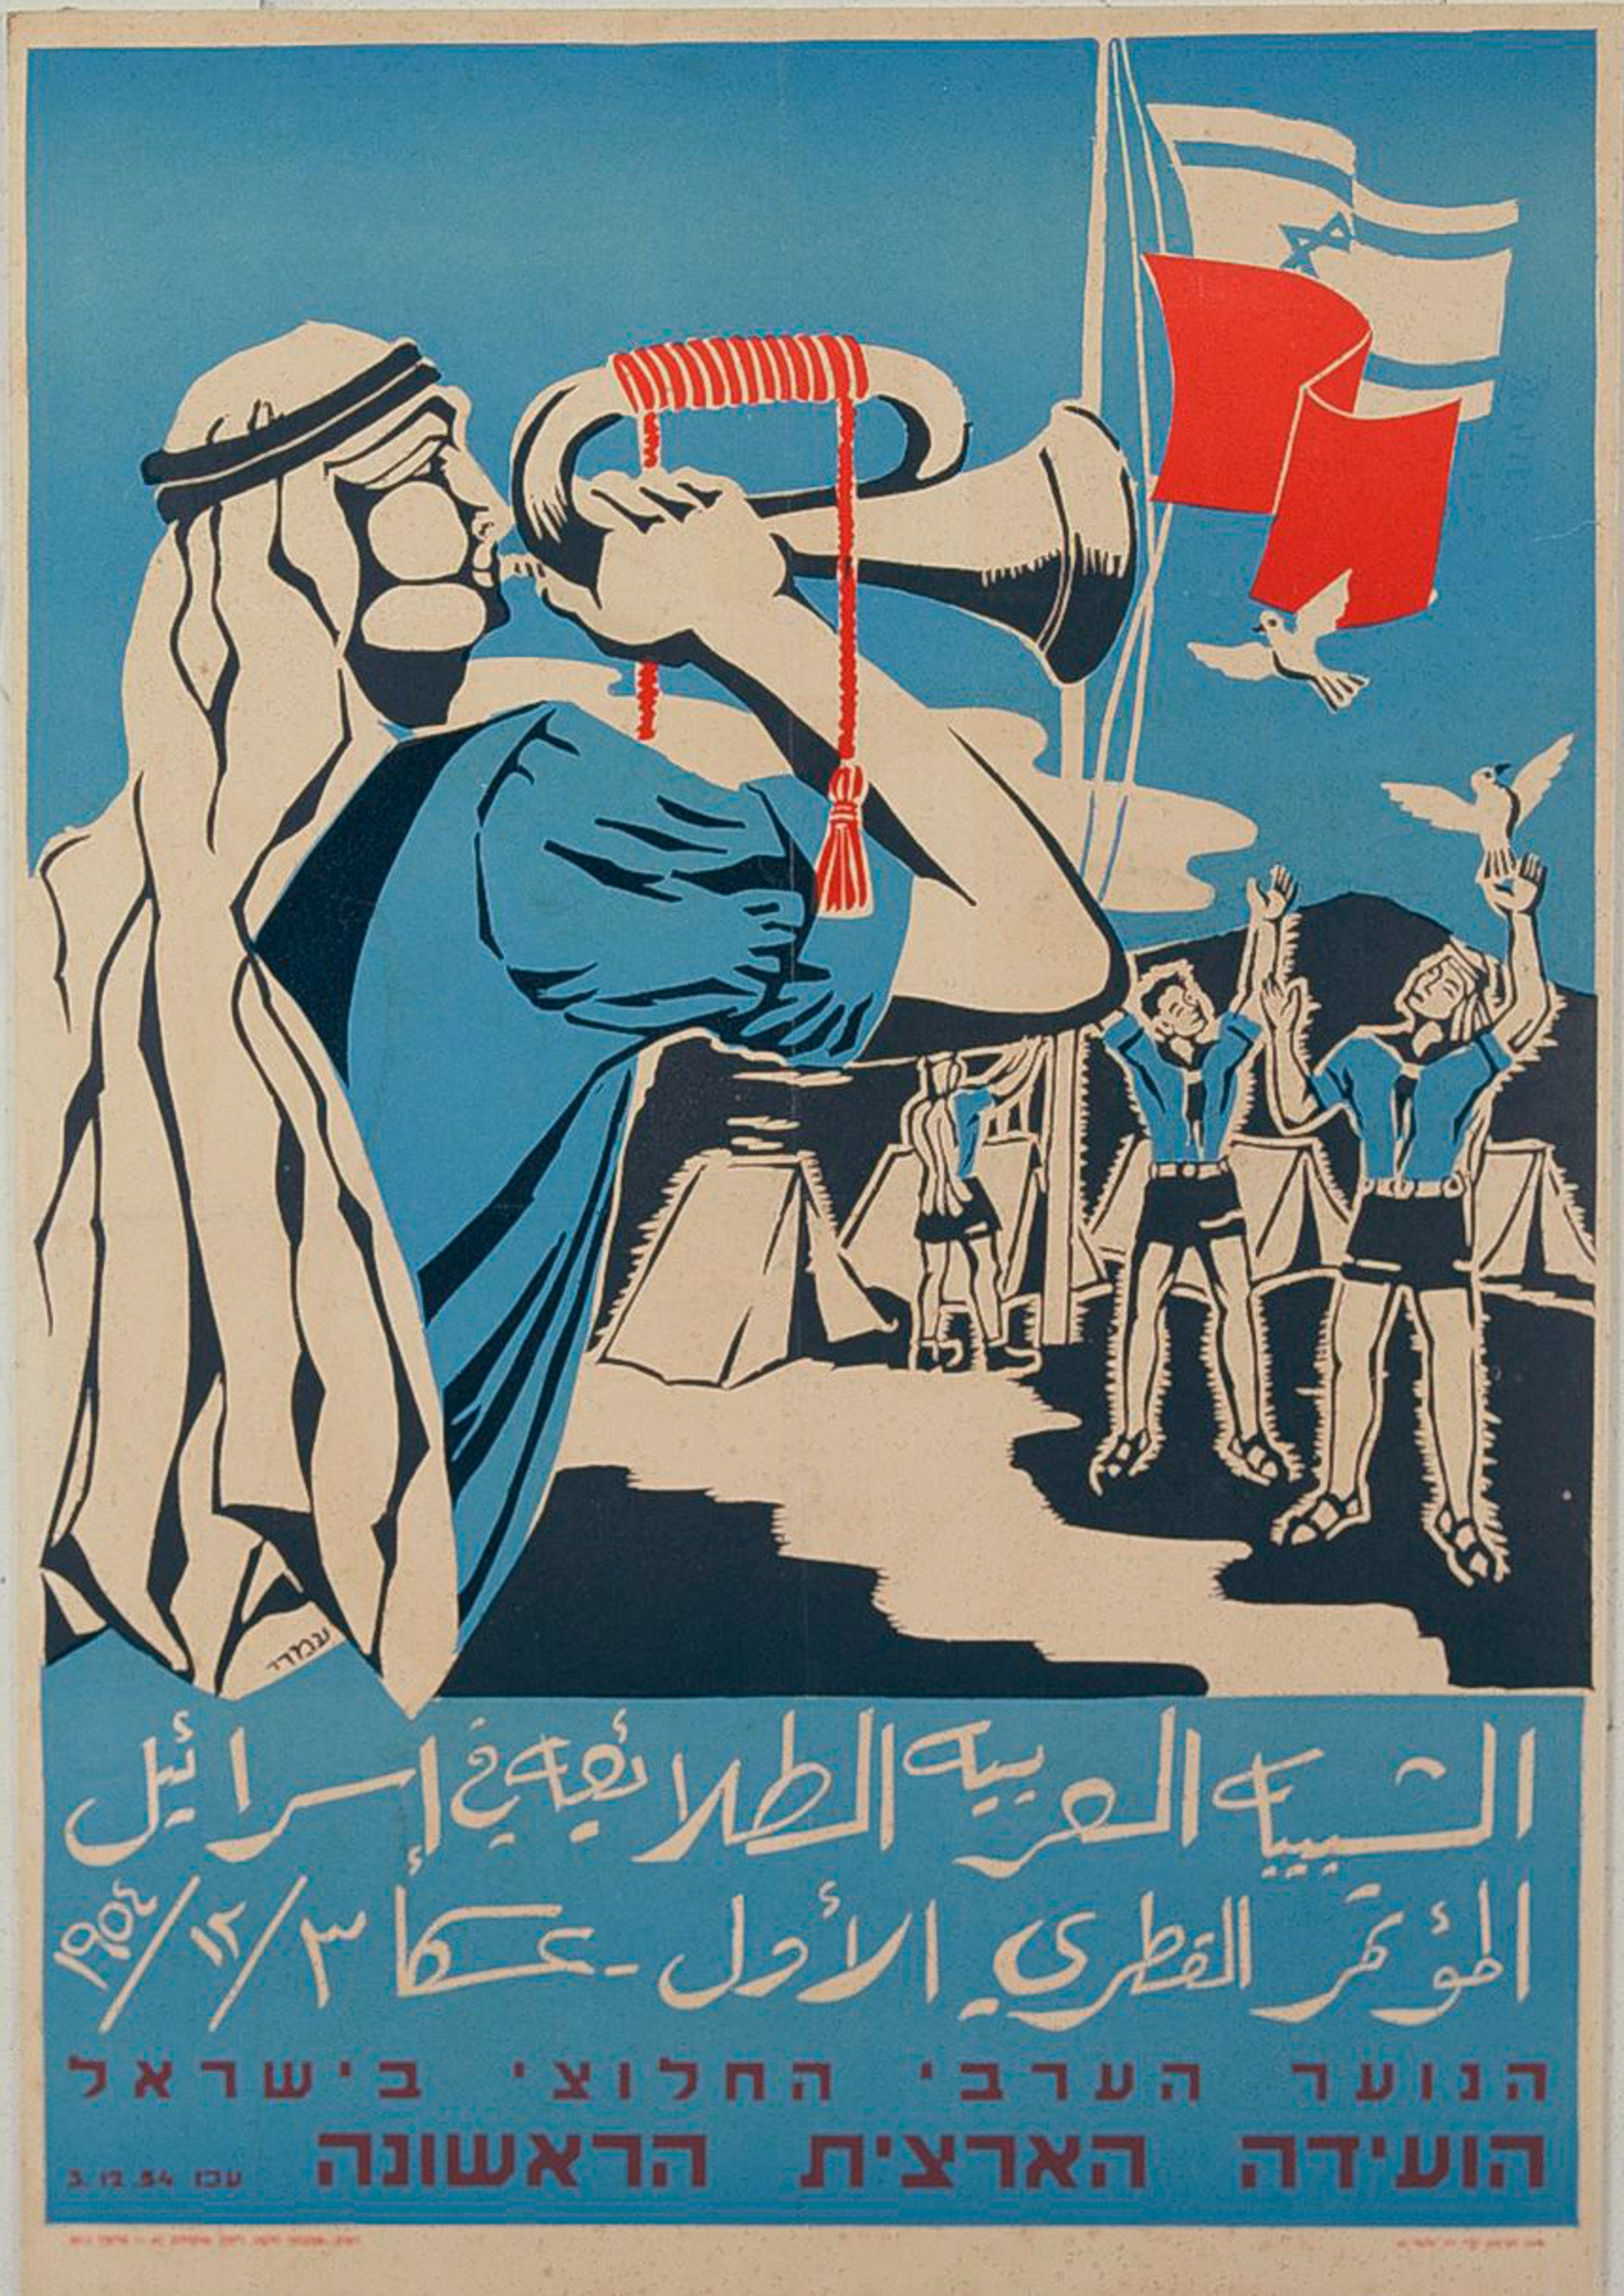 A poster on which the Arab pioneer brandishes two flags: the red flag of socialism but also the blue-and-white banner of Israel.